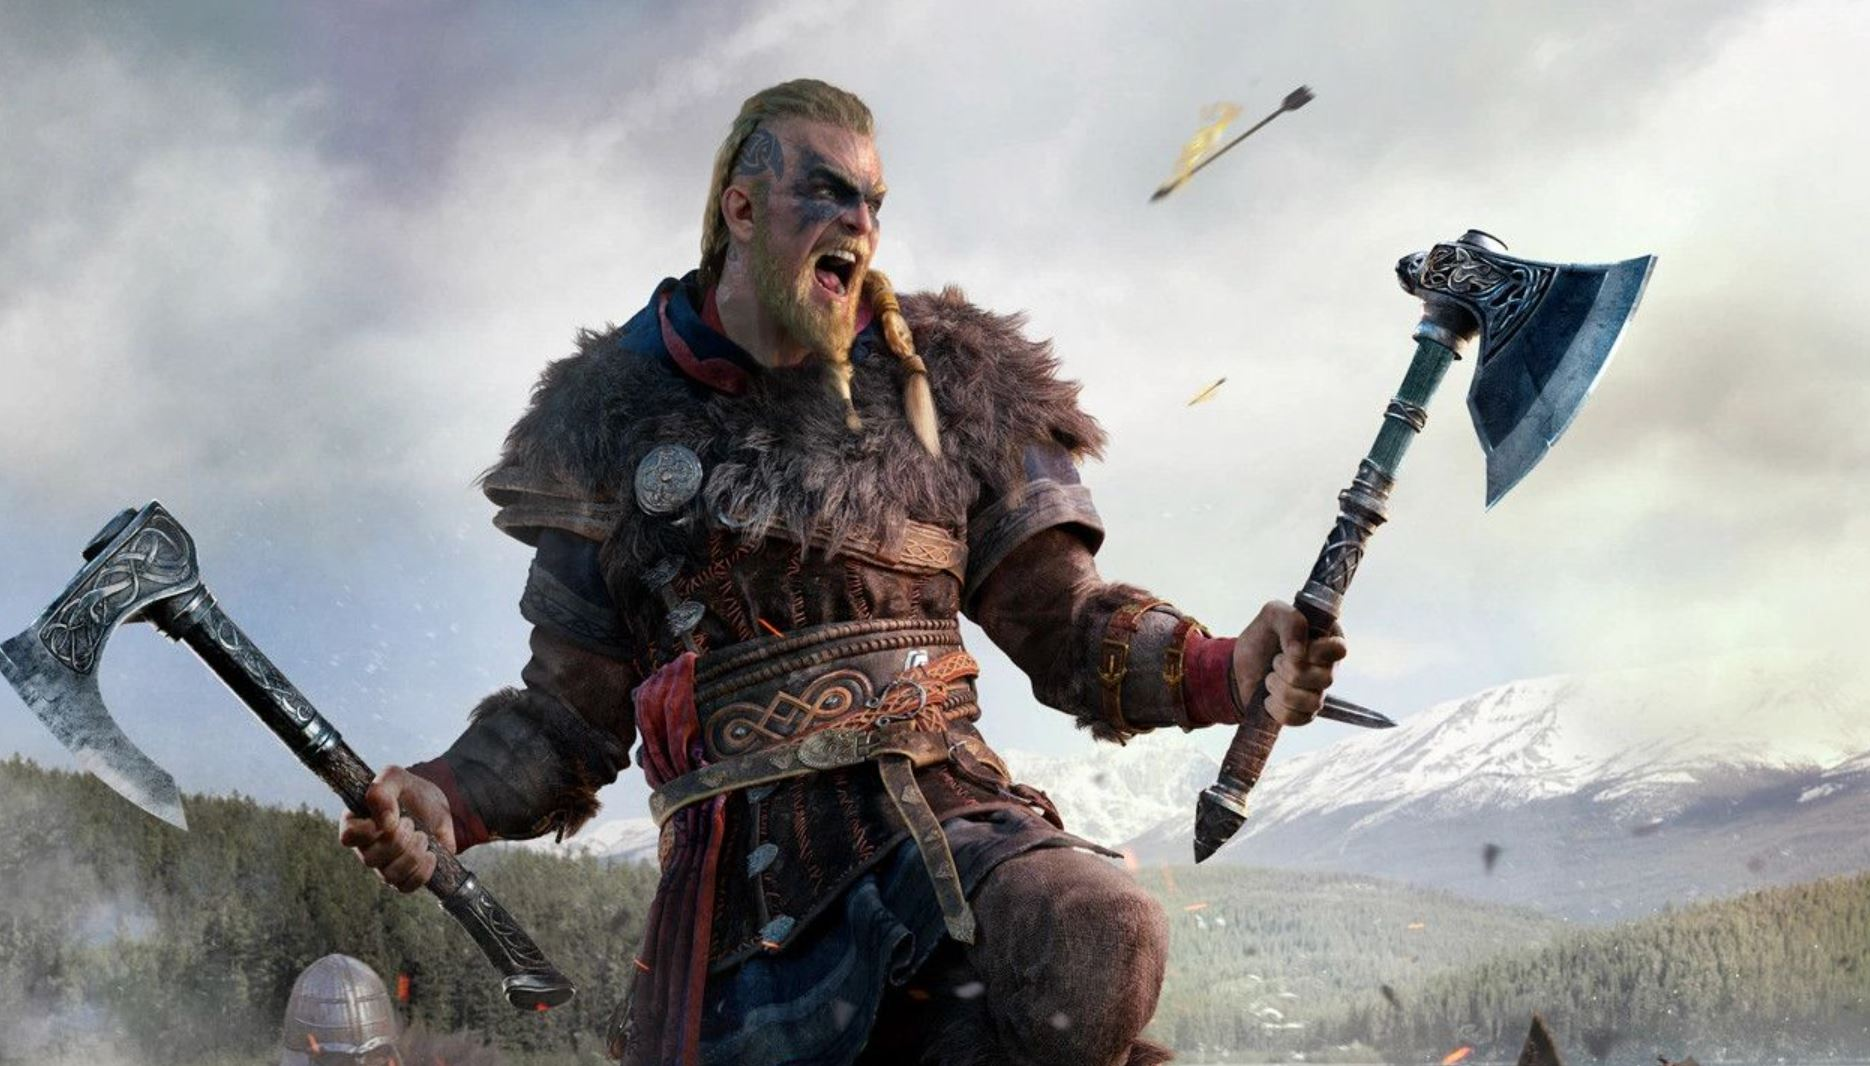 deal-assassins-creed-bundle-including-valhalla-odyssey-and-origins-slashed-to-just-79-99-on-the-playstation-store